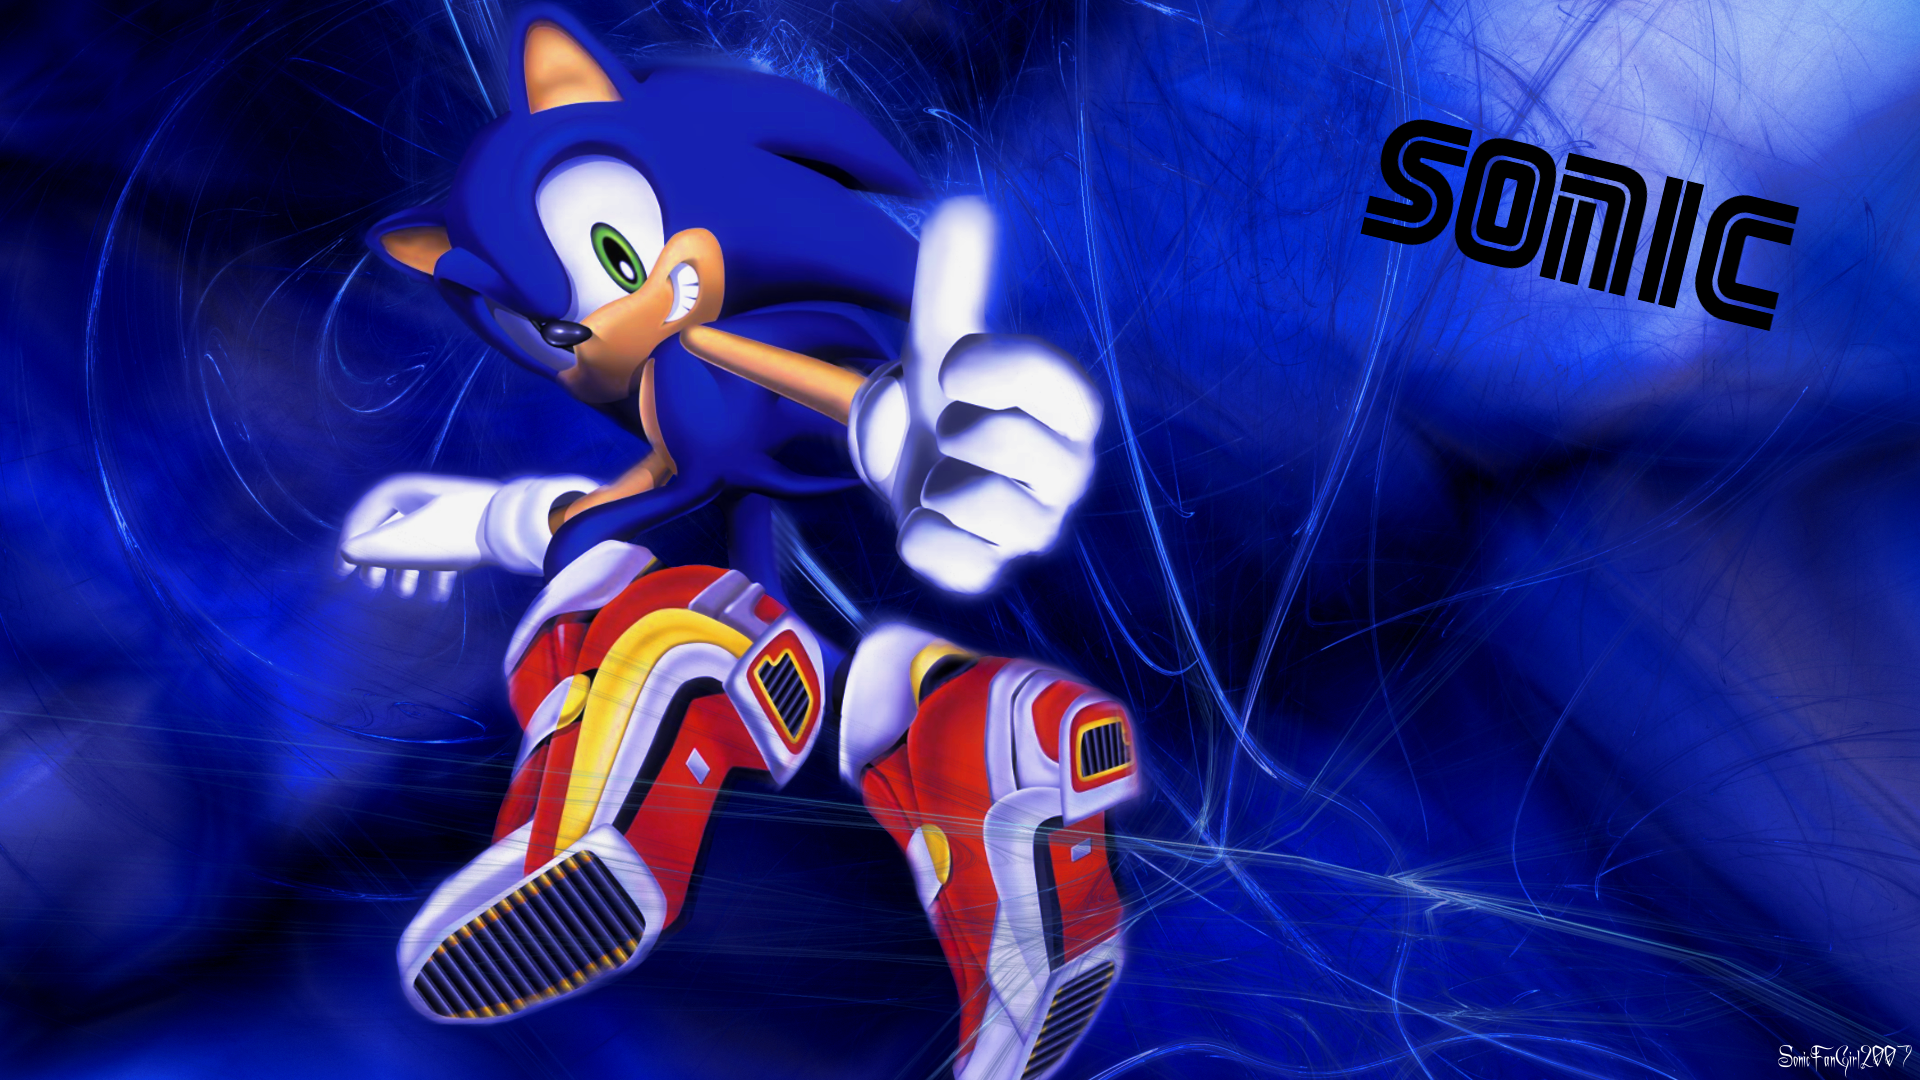 Sonic The Hedgehog Wallpaper Sonic The Hedgehog Hedgehog Sonic